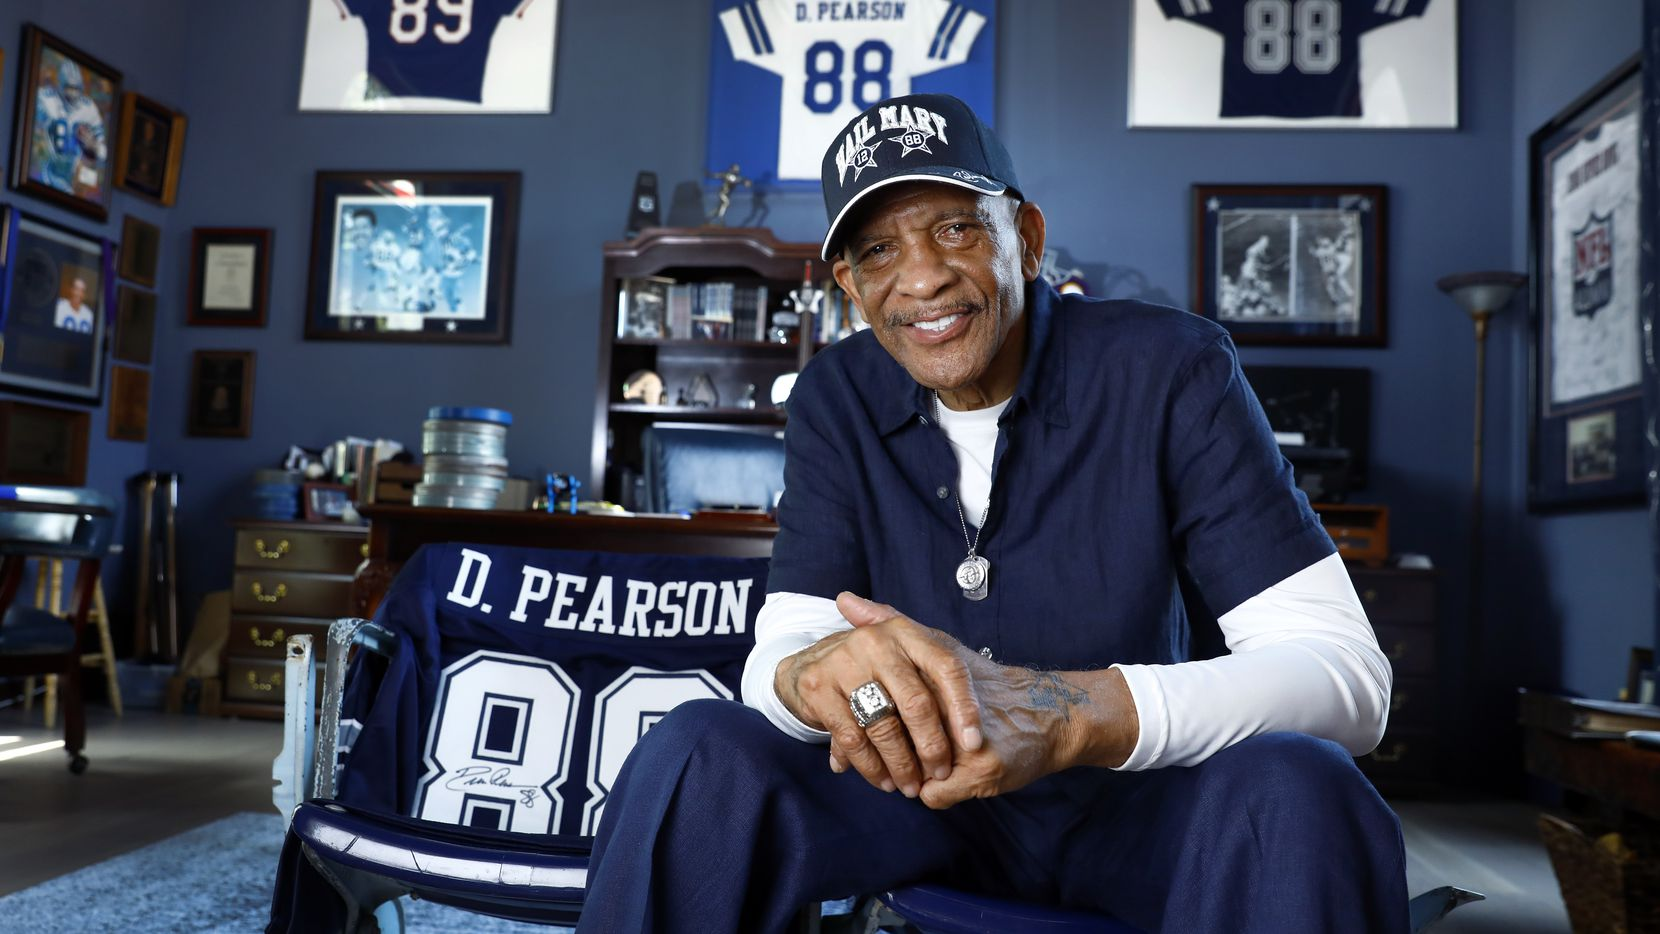 Pro Football Hall of Fame inductee Drew Pearson poses for a photo on Texas Stadium seats inside his Plano home office. The former Dallas Cowboys wide receiver and original No. 88 was voted into the 2021 Hall of Fame class and will be inducted in Canton this summer.